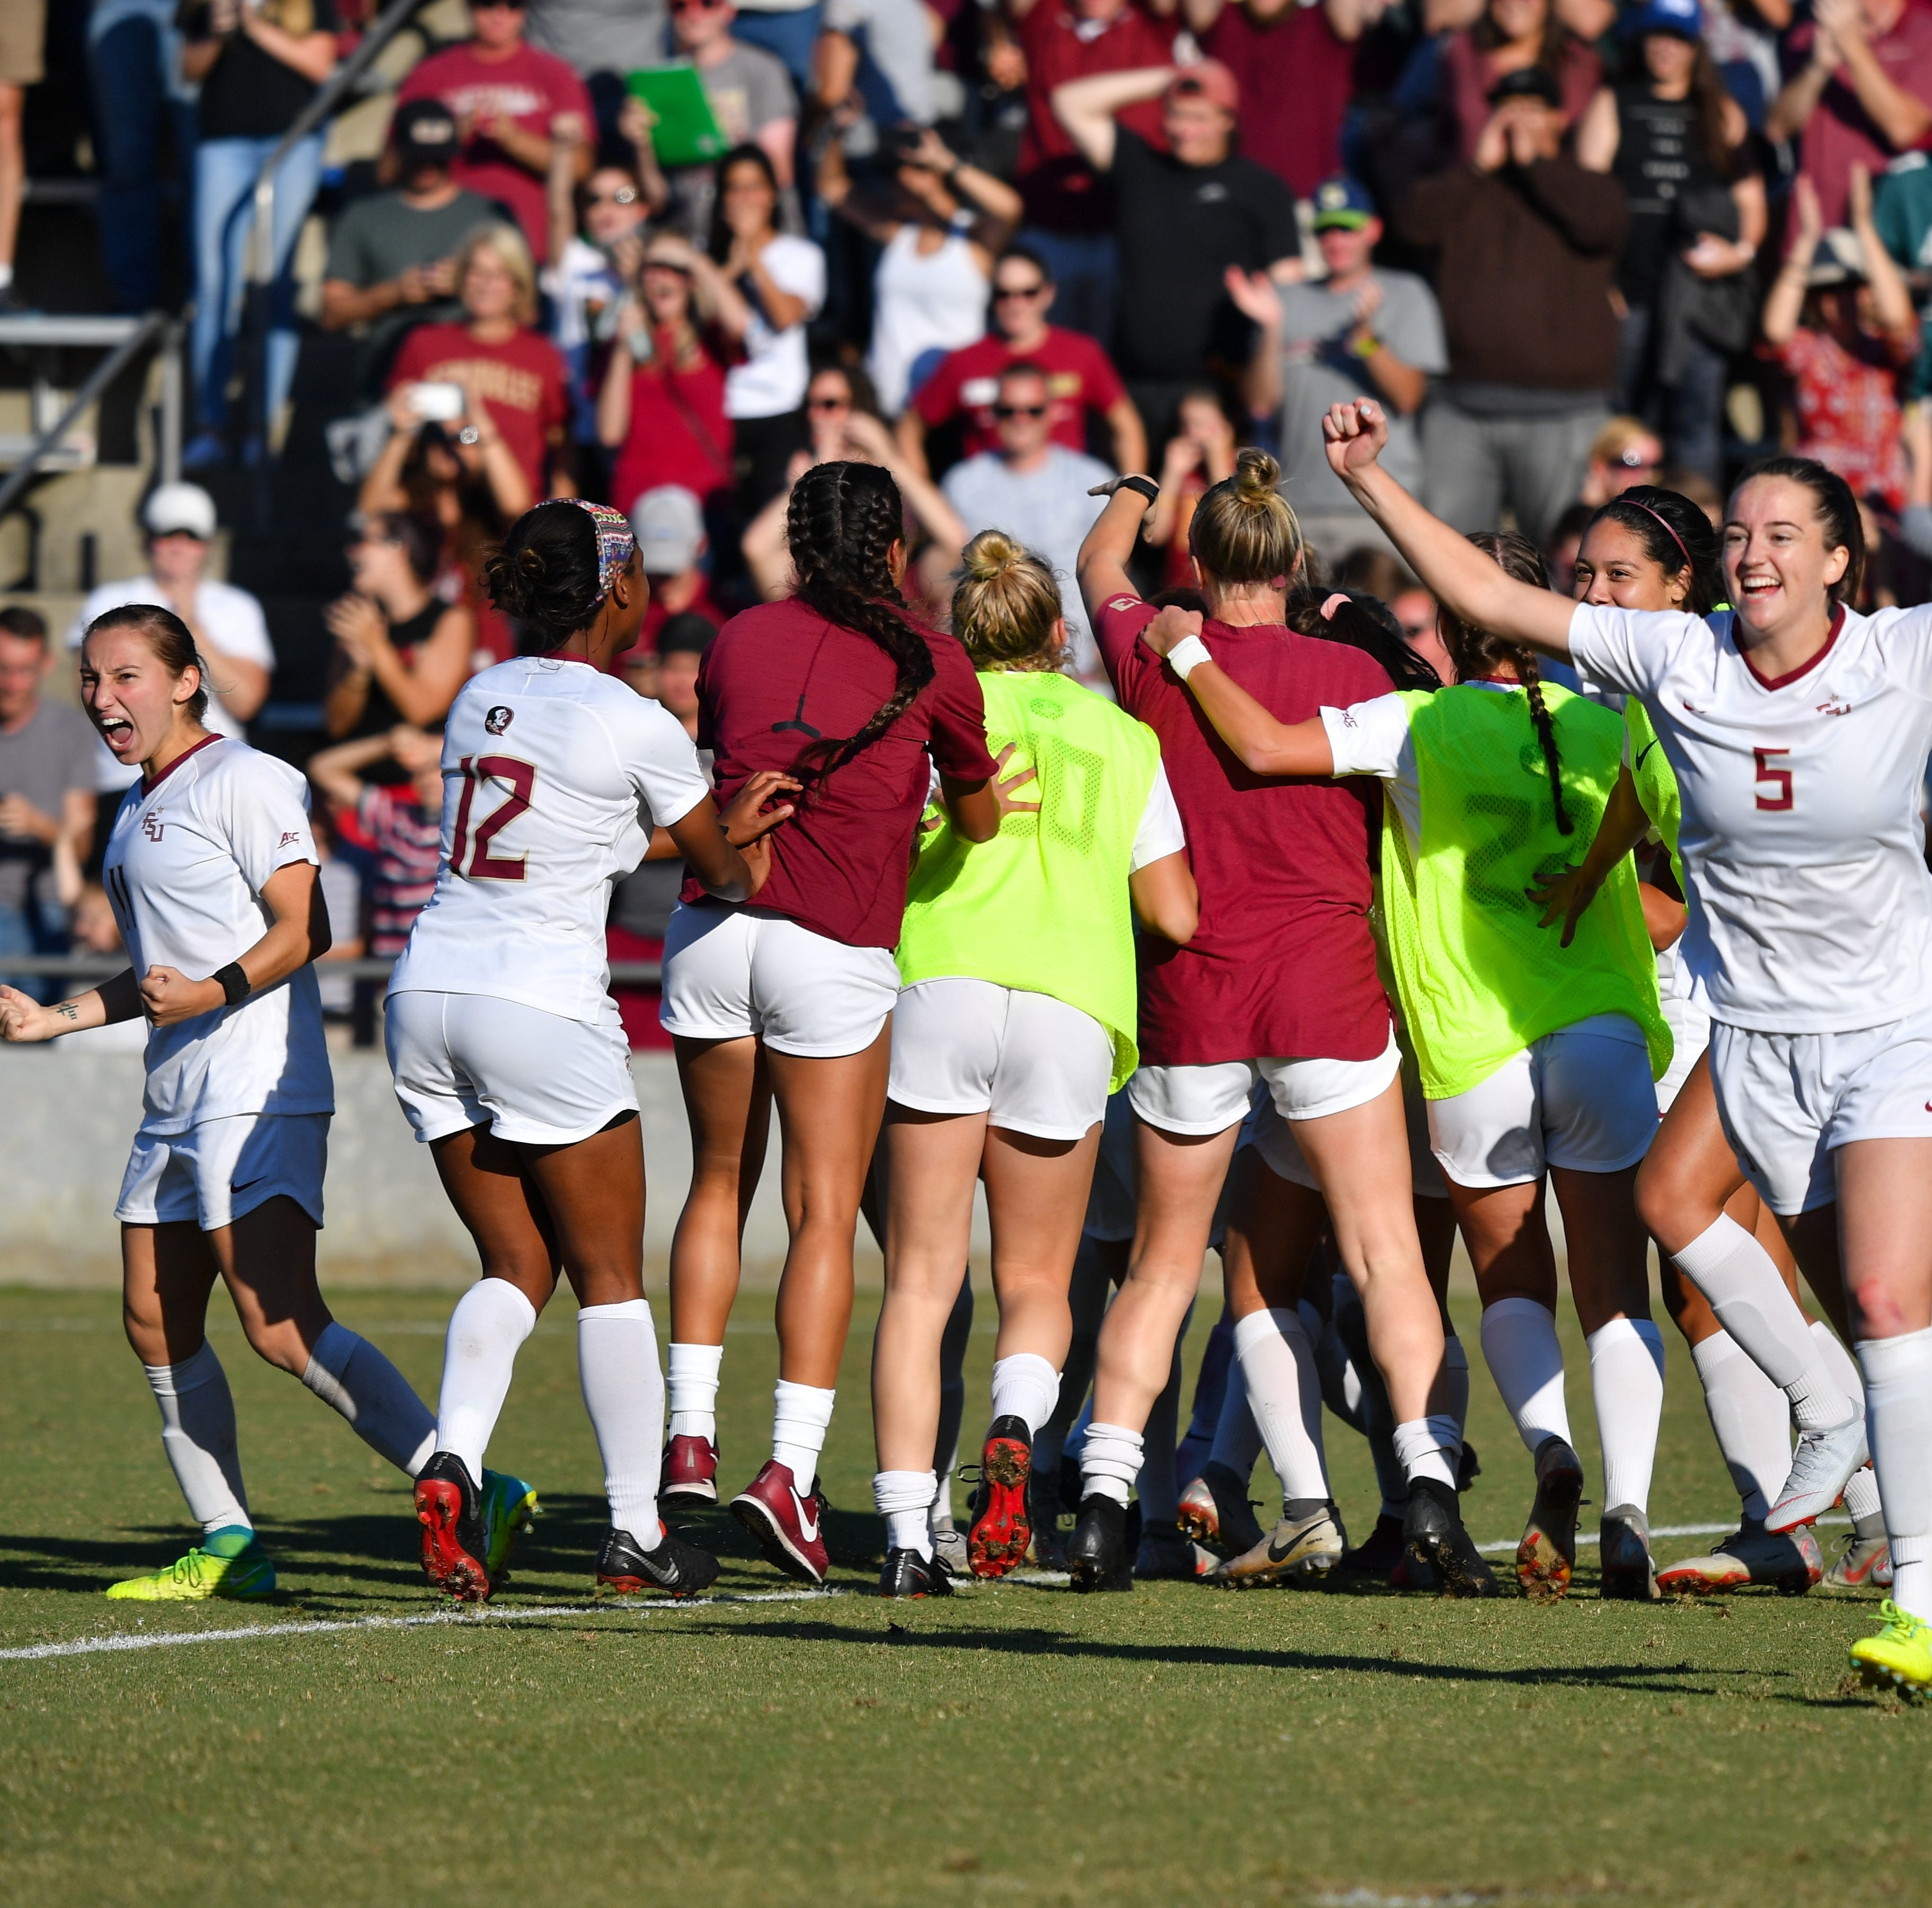 No. 5 Florida State survives No. 6 USC to win in penalty kicks